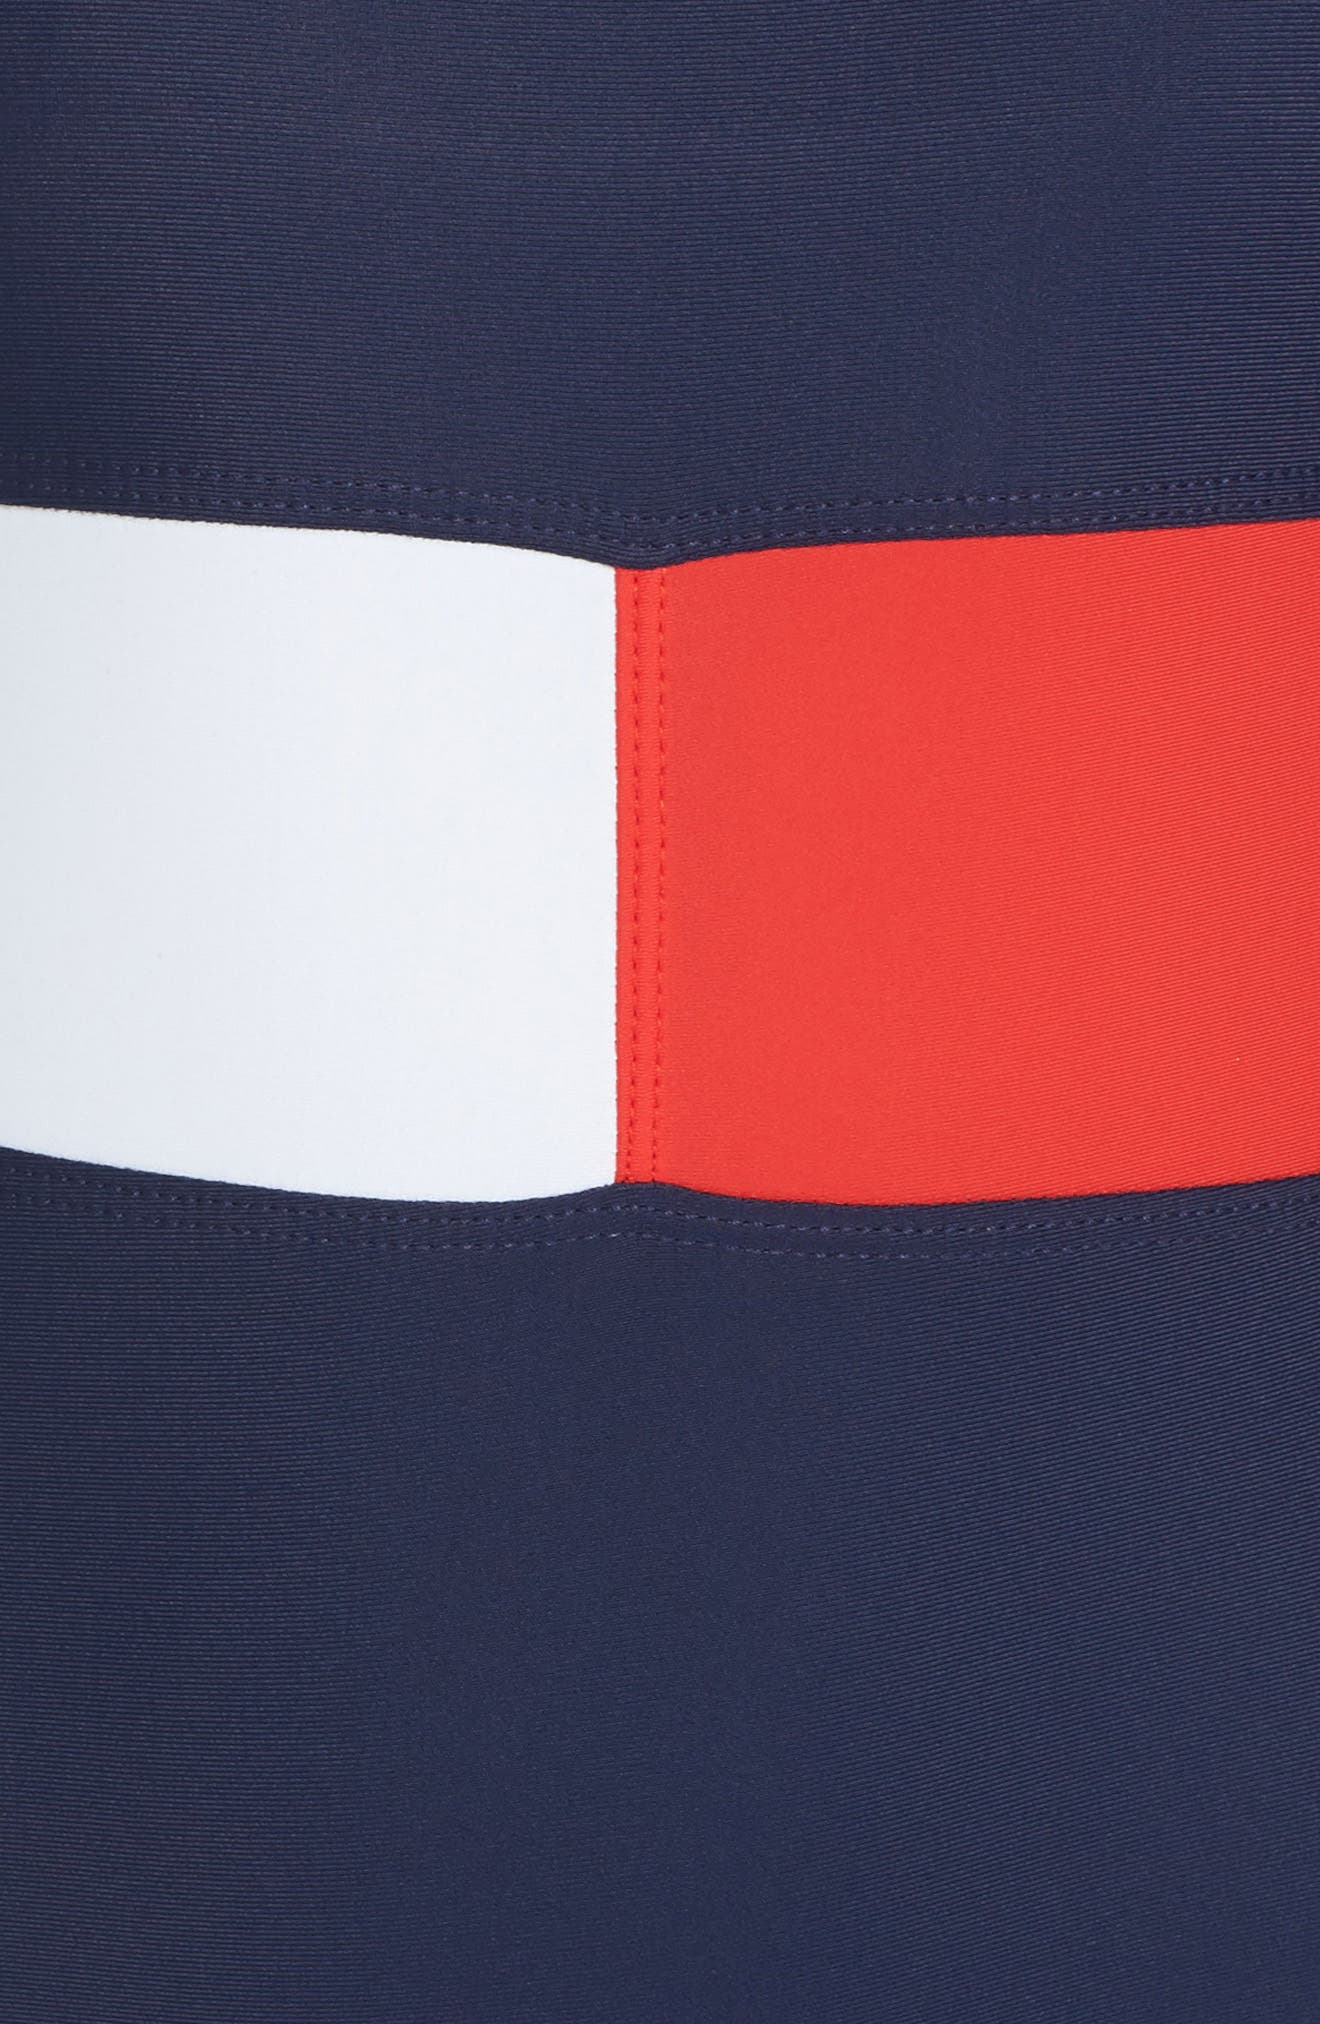 TOMMY HILFIGER, Flag One-Piece Swimsuit, Alternate thumbnail 5, color, 400